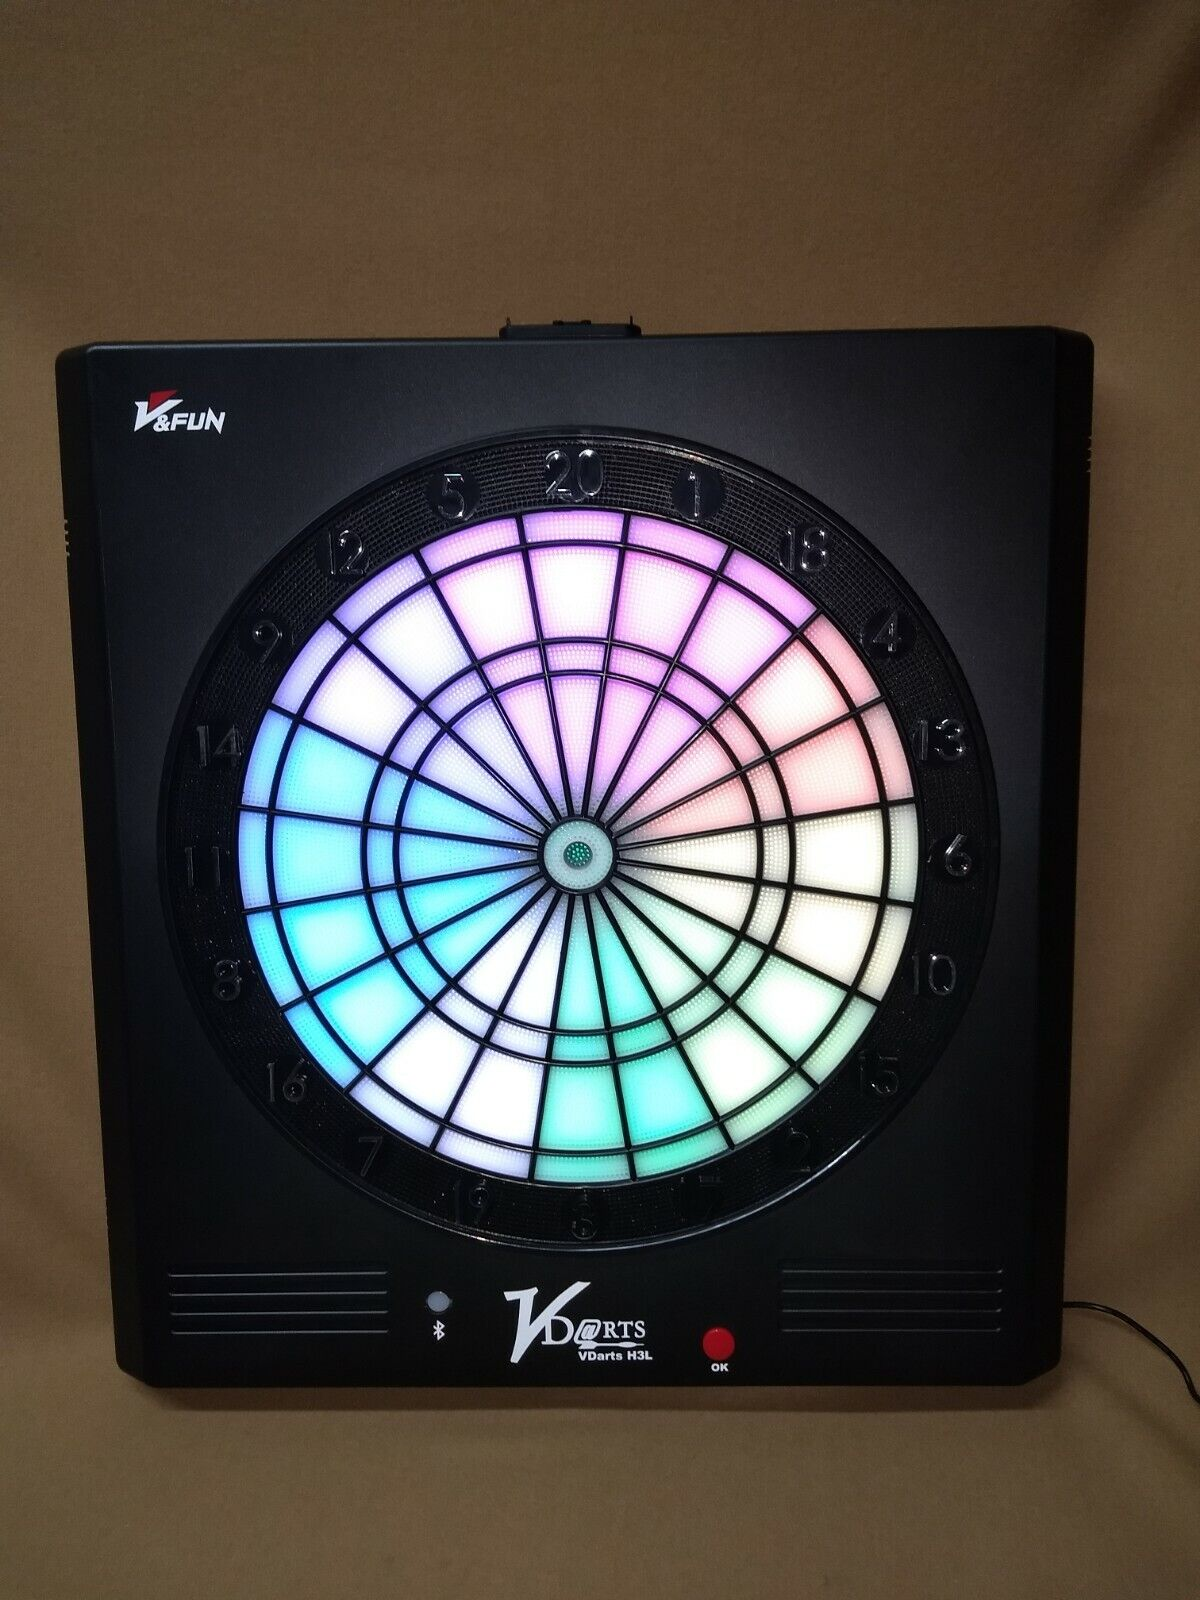 Vdarts Smart LED Global Online H3L Electronic Soft Tip Dartboard w FREE Shipping